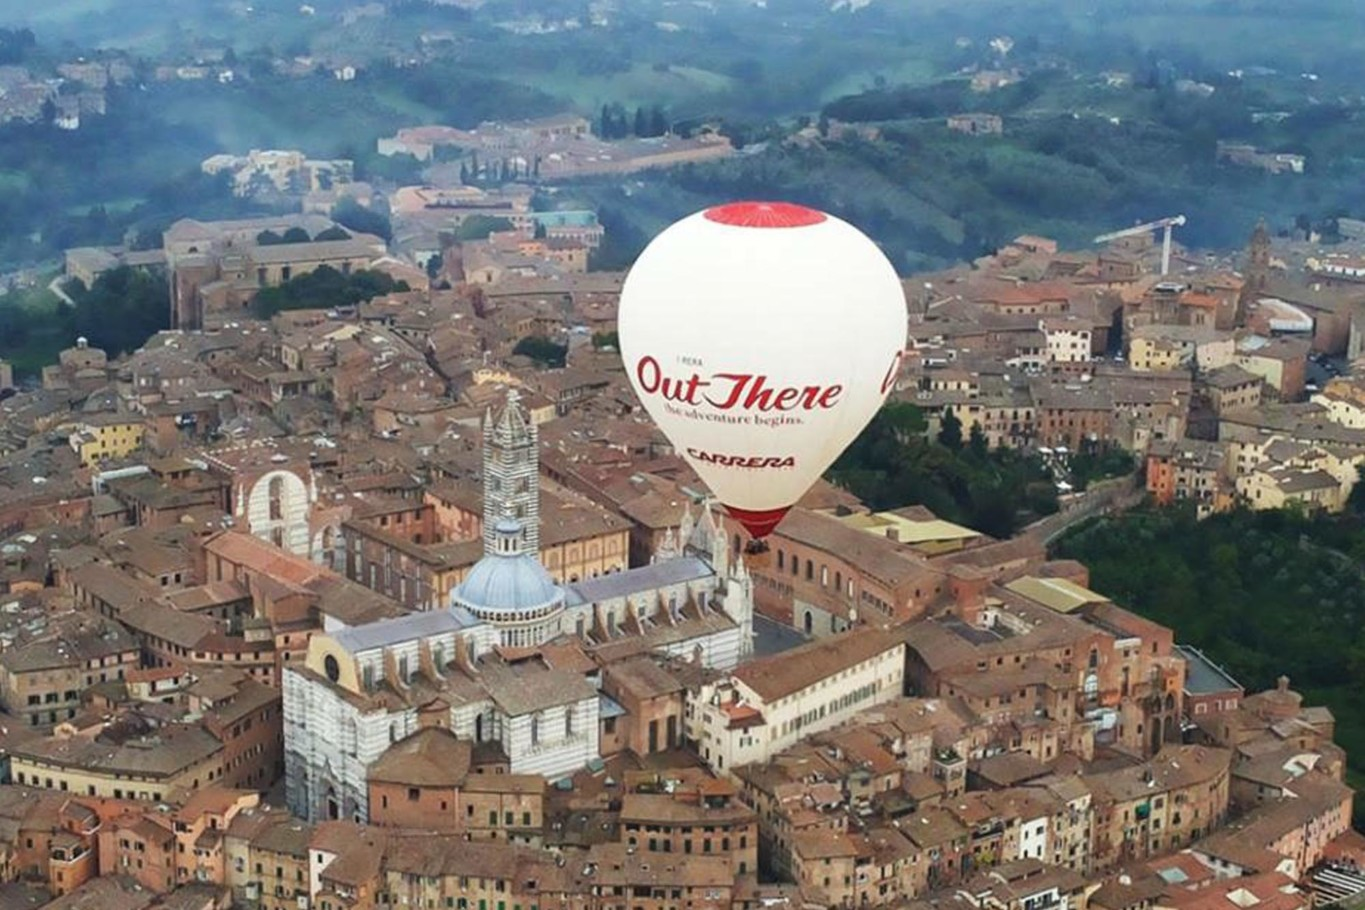 Ballooning in Siena above Tuscany